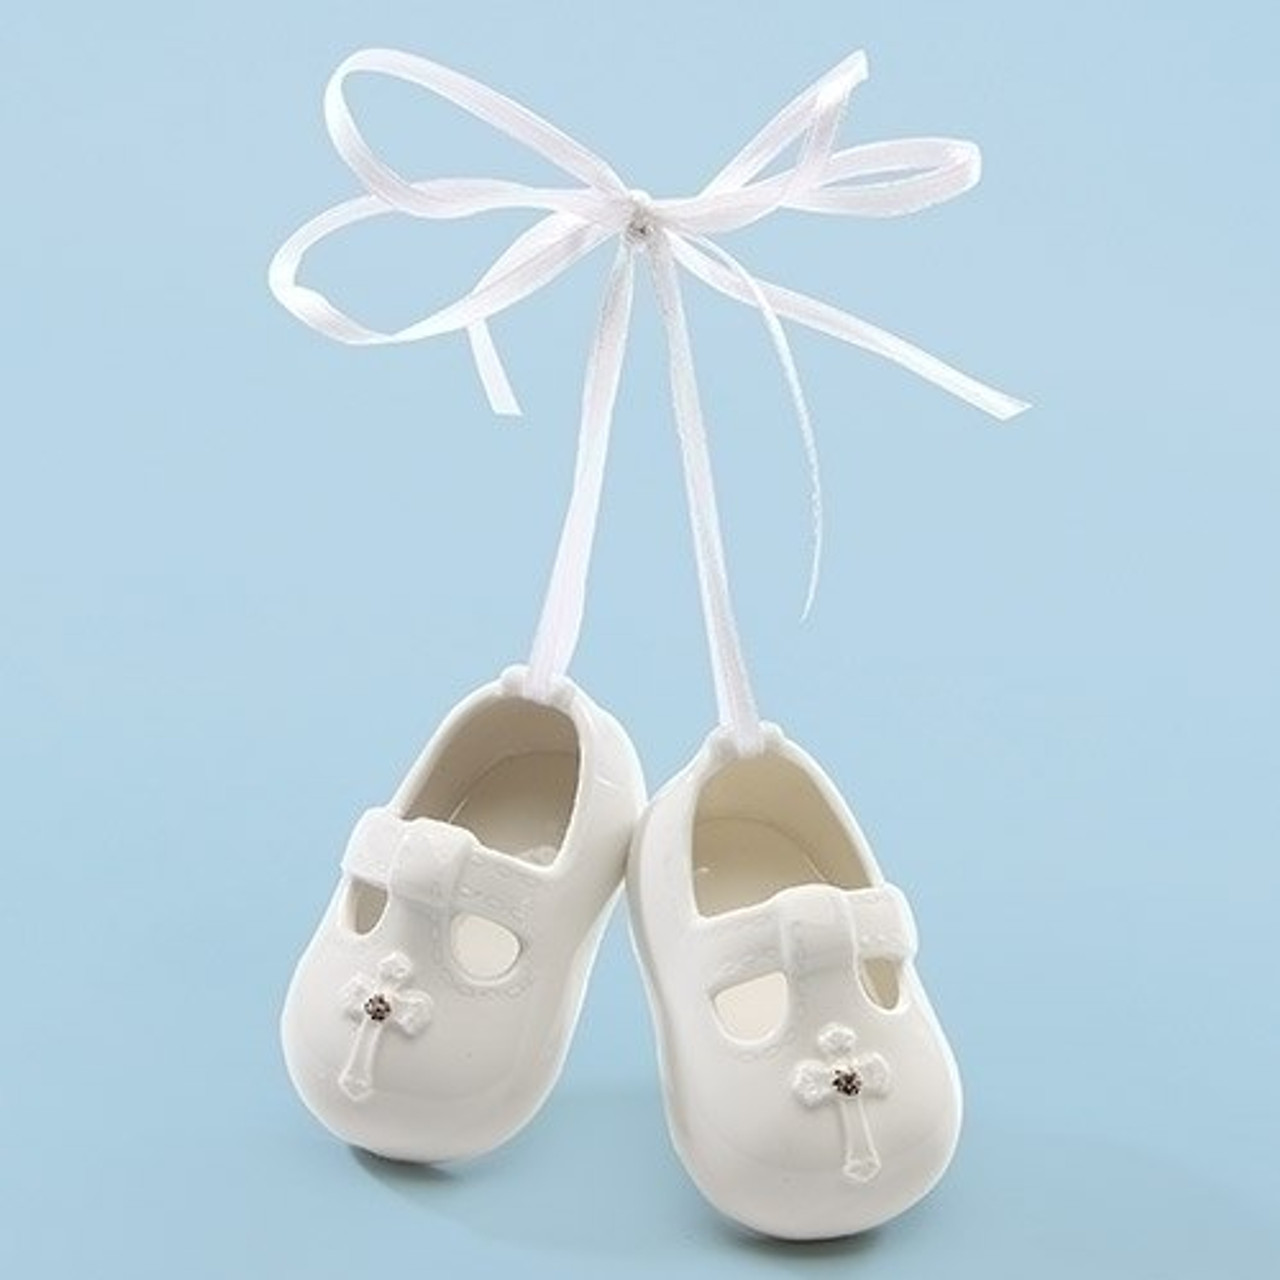 5a9fc2f1823ed Baby Shoes | Ornament | White | Cross | 1-1/2